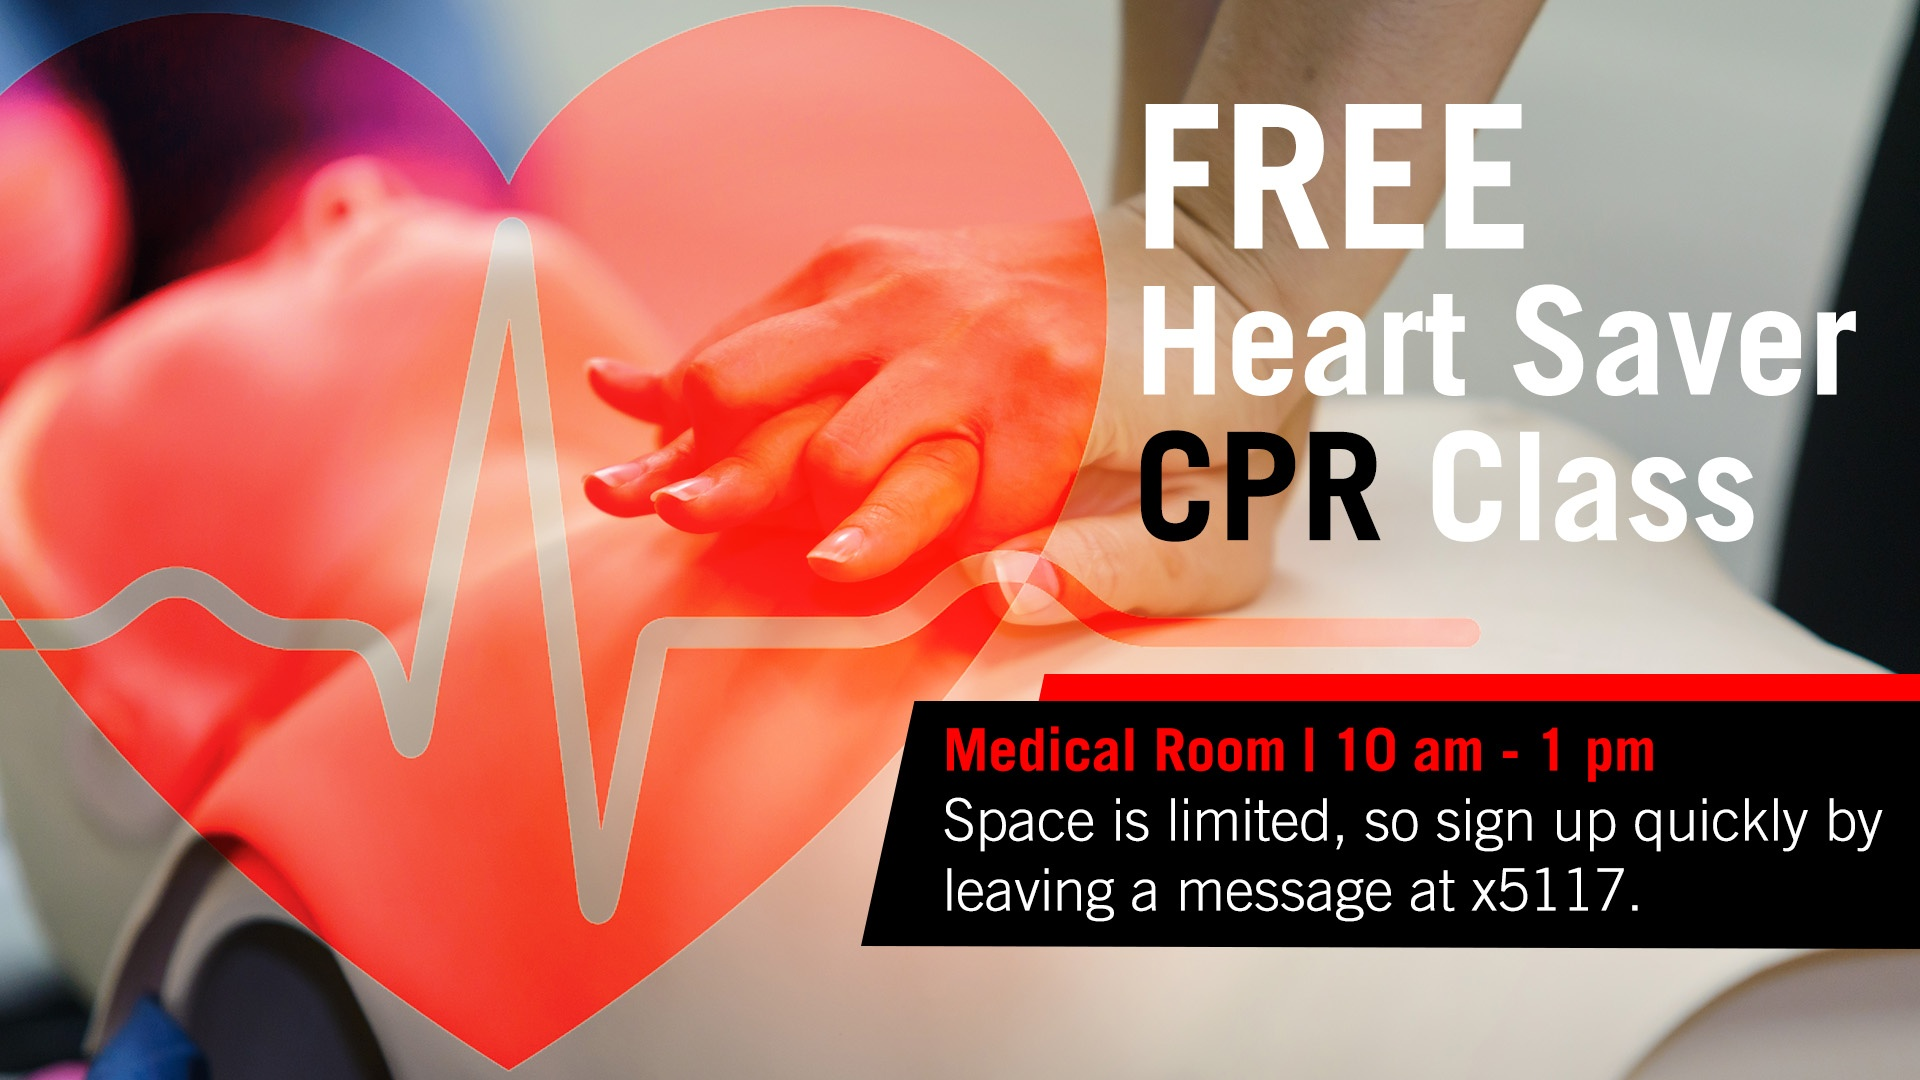 Free Heart Saver CPR class